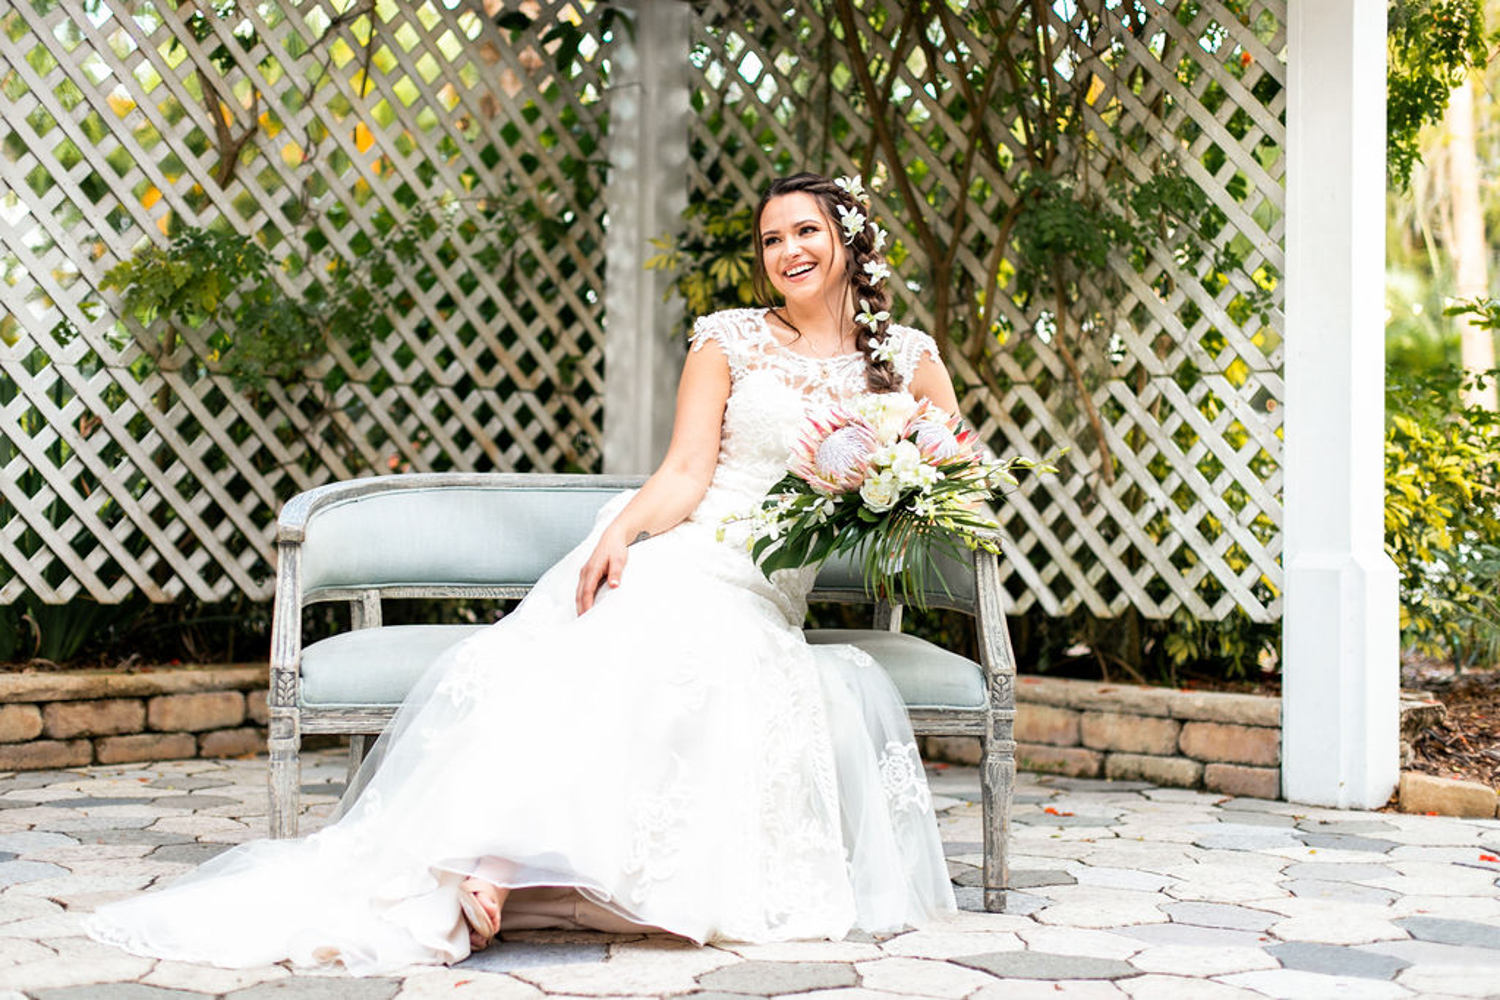 bride smiling on settee before wedding ceremony